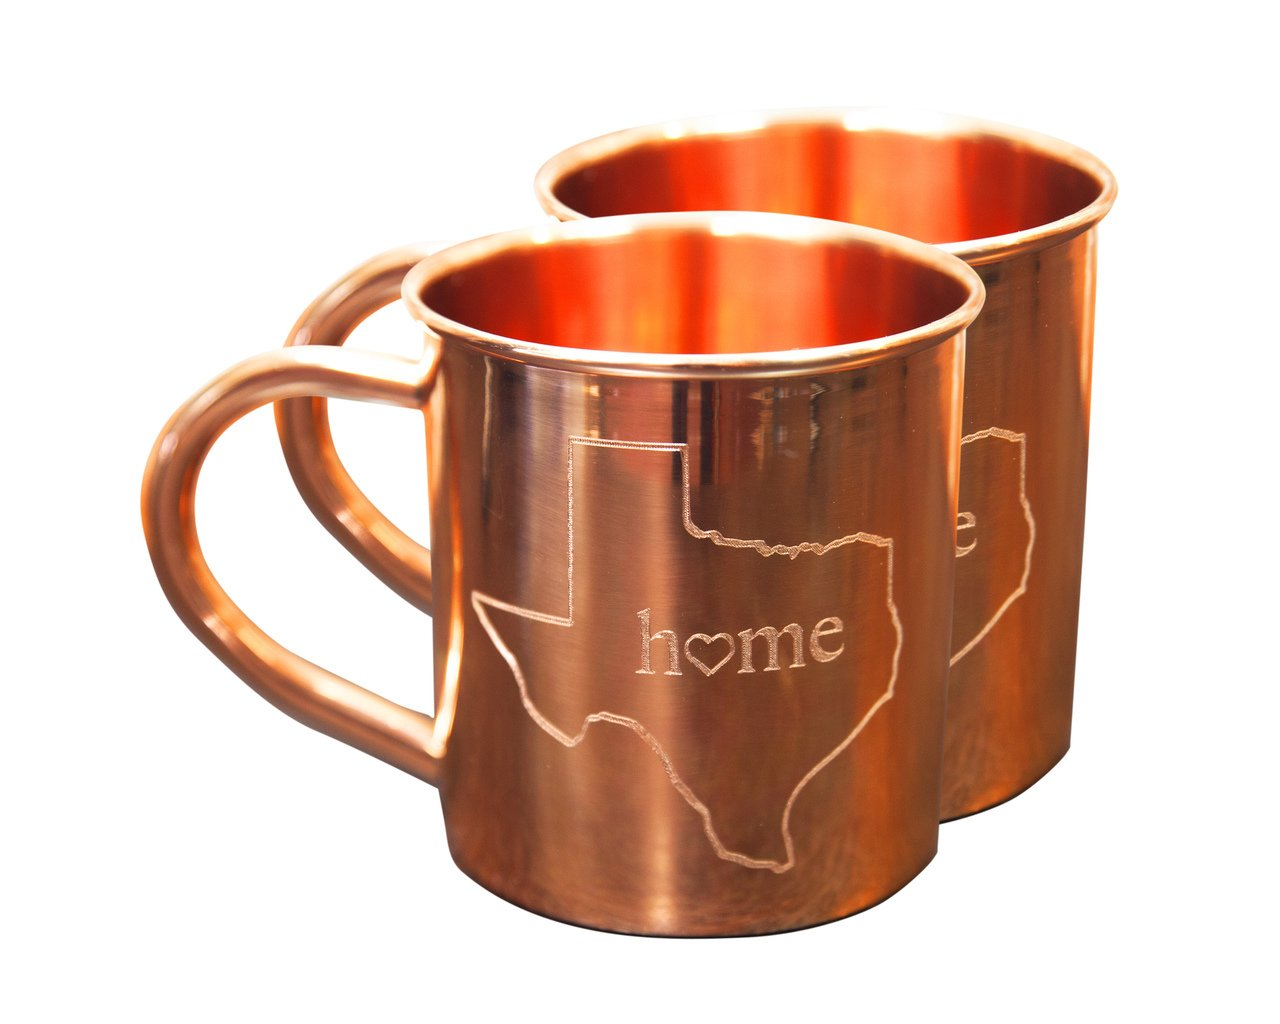 Home State Copper Mugs for Moscow Mules - Texas Mug - 100% Pure Copper Mug - Best For Moscow Mule Lovers - Set of 2 Copper Cups - 14 oz Size By Alchemade